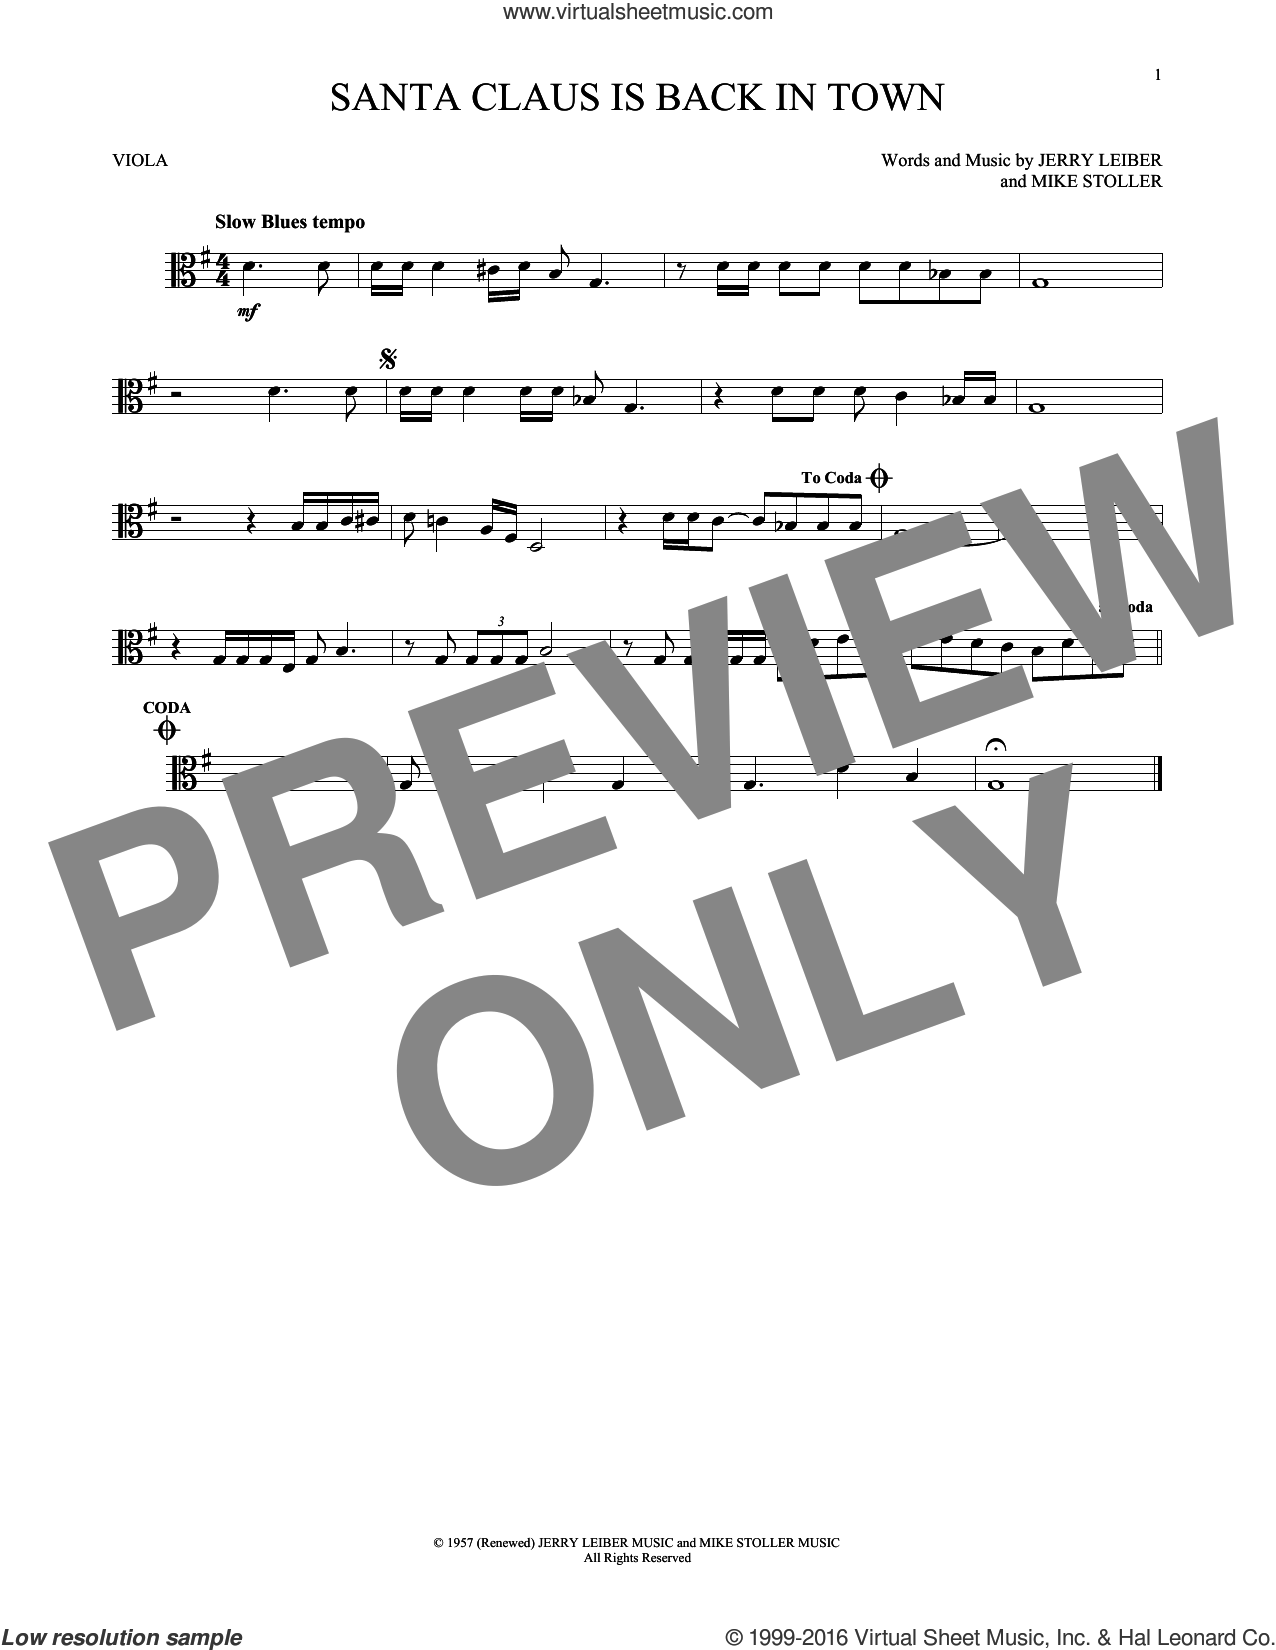 Santa Claus Is Back In Town sheet music for viola solo by Elvis Presley, Jerry Leiber and Mike Stoller, intermediate skill level